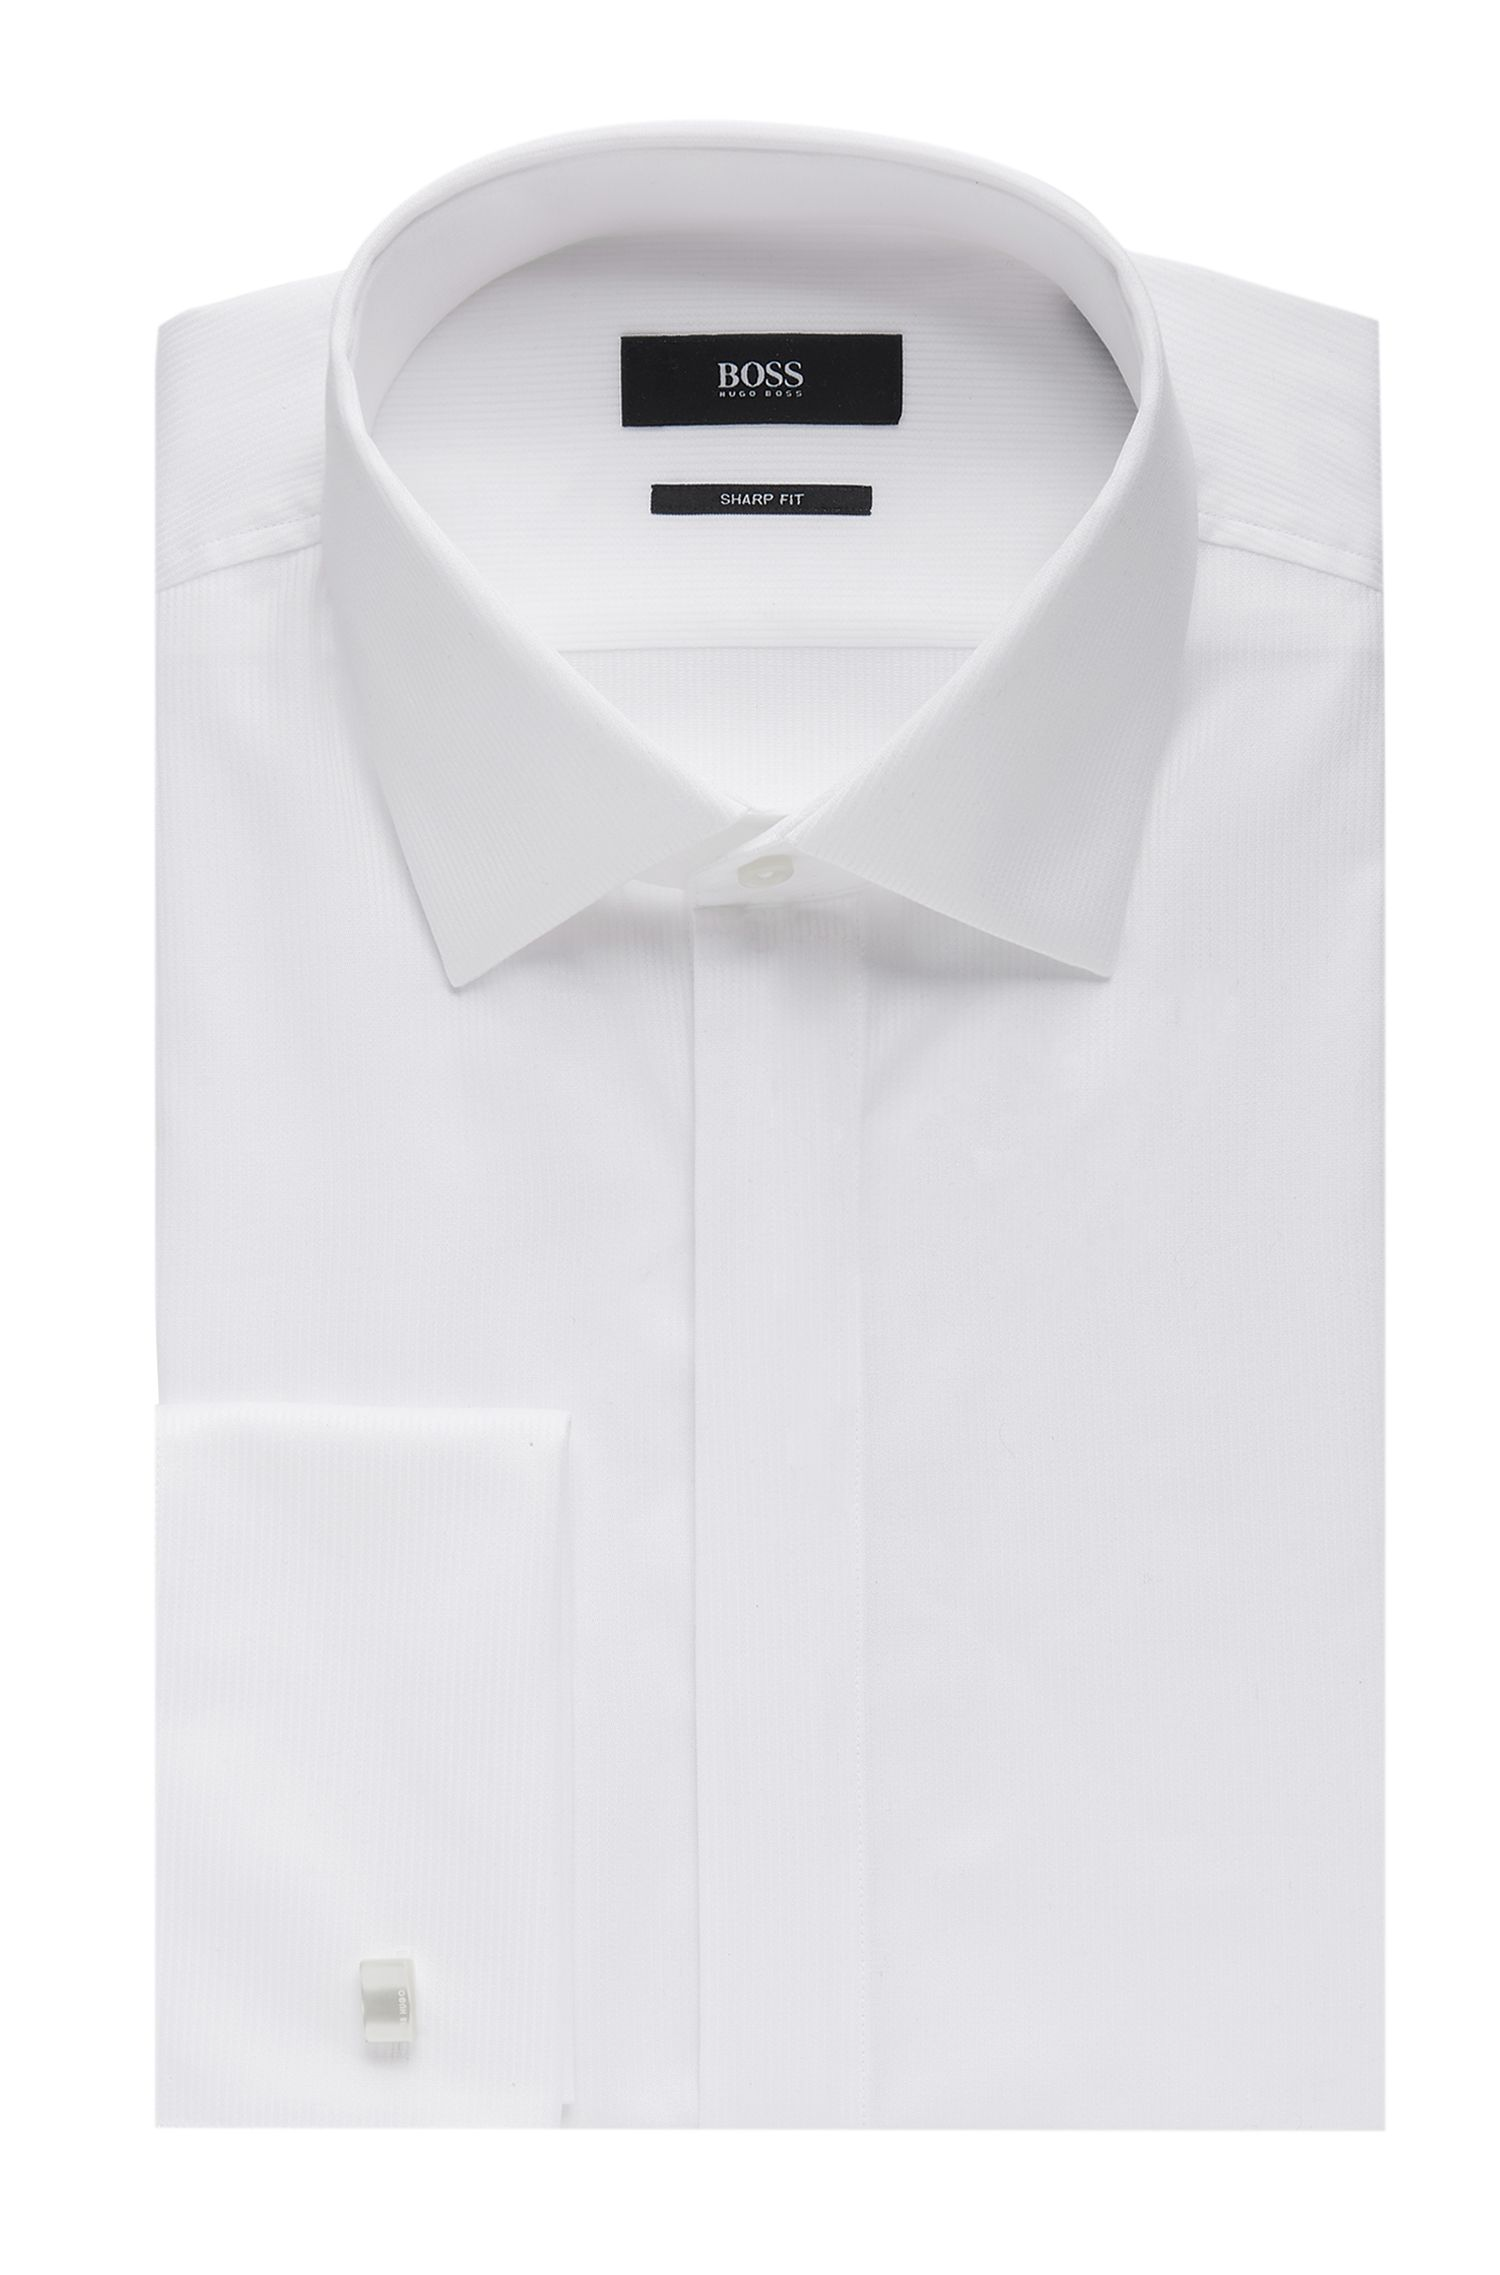 French Cuff Pique Cotton Dress Shirt, Slim Fit | Marlyn US